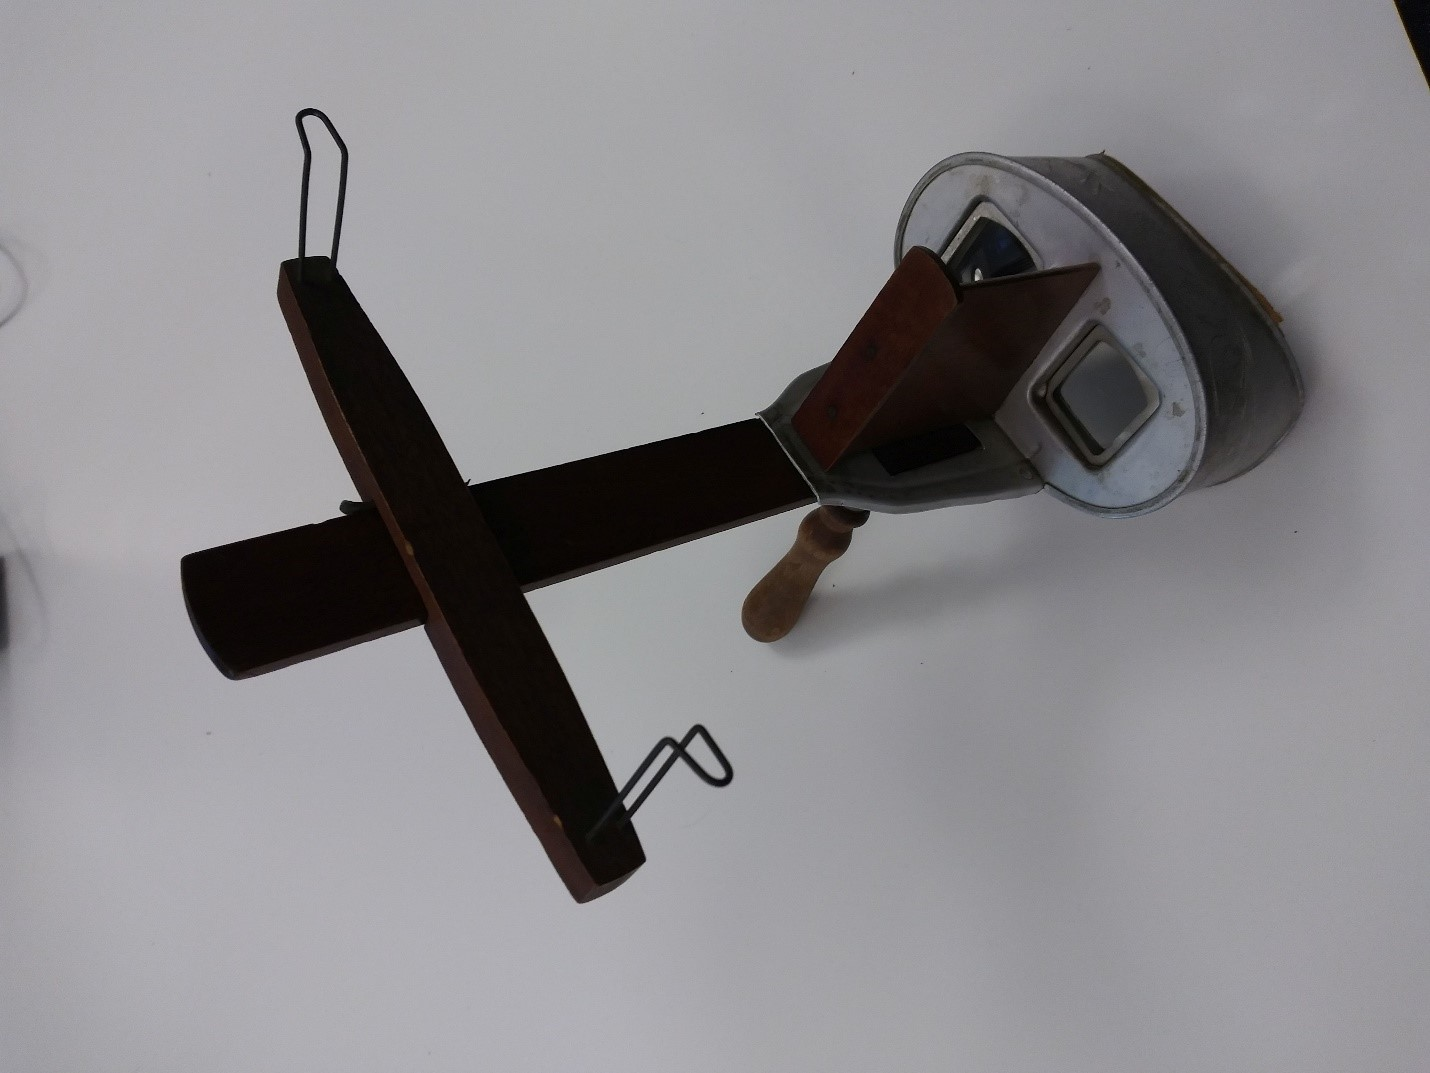 One of the Special Collections stereoscopes